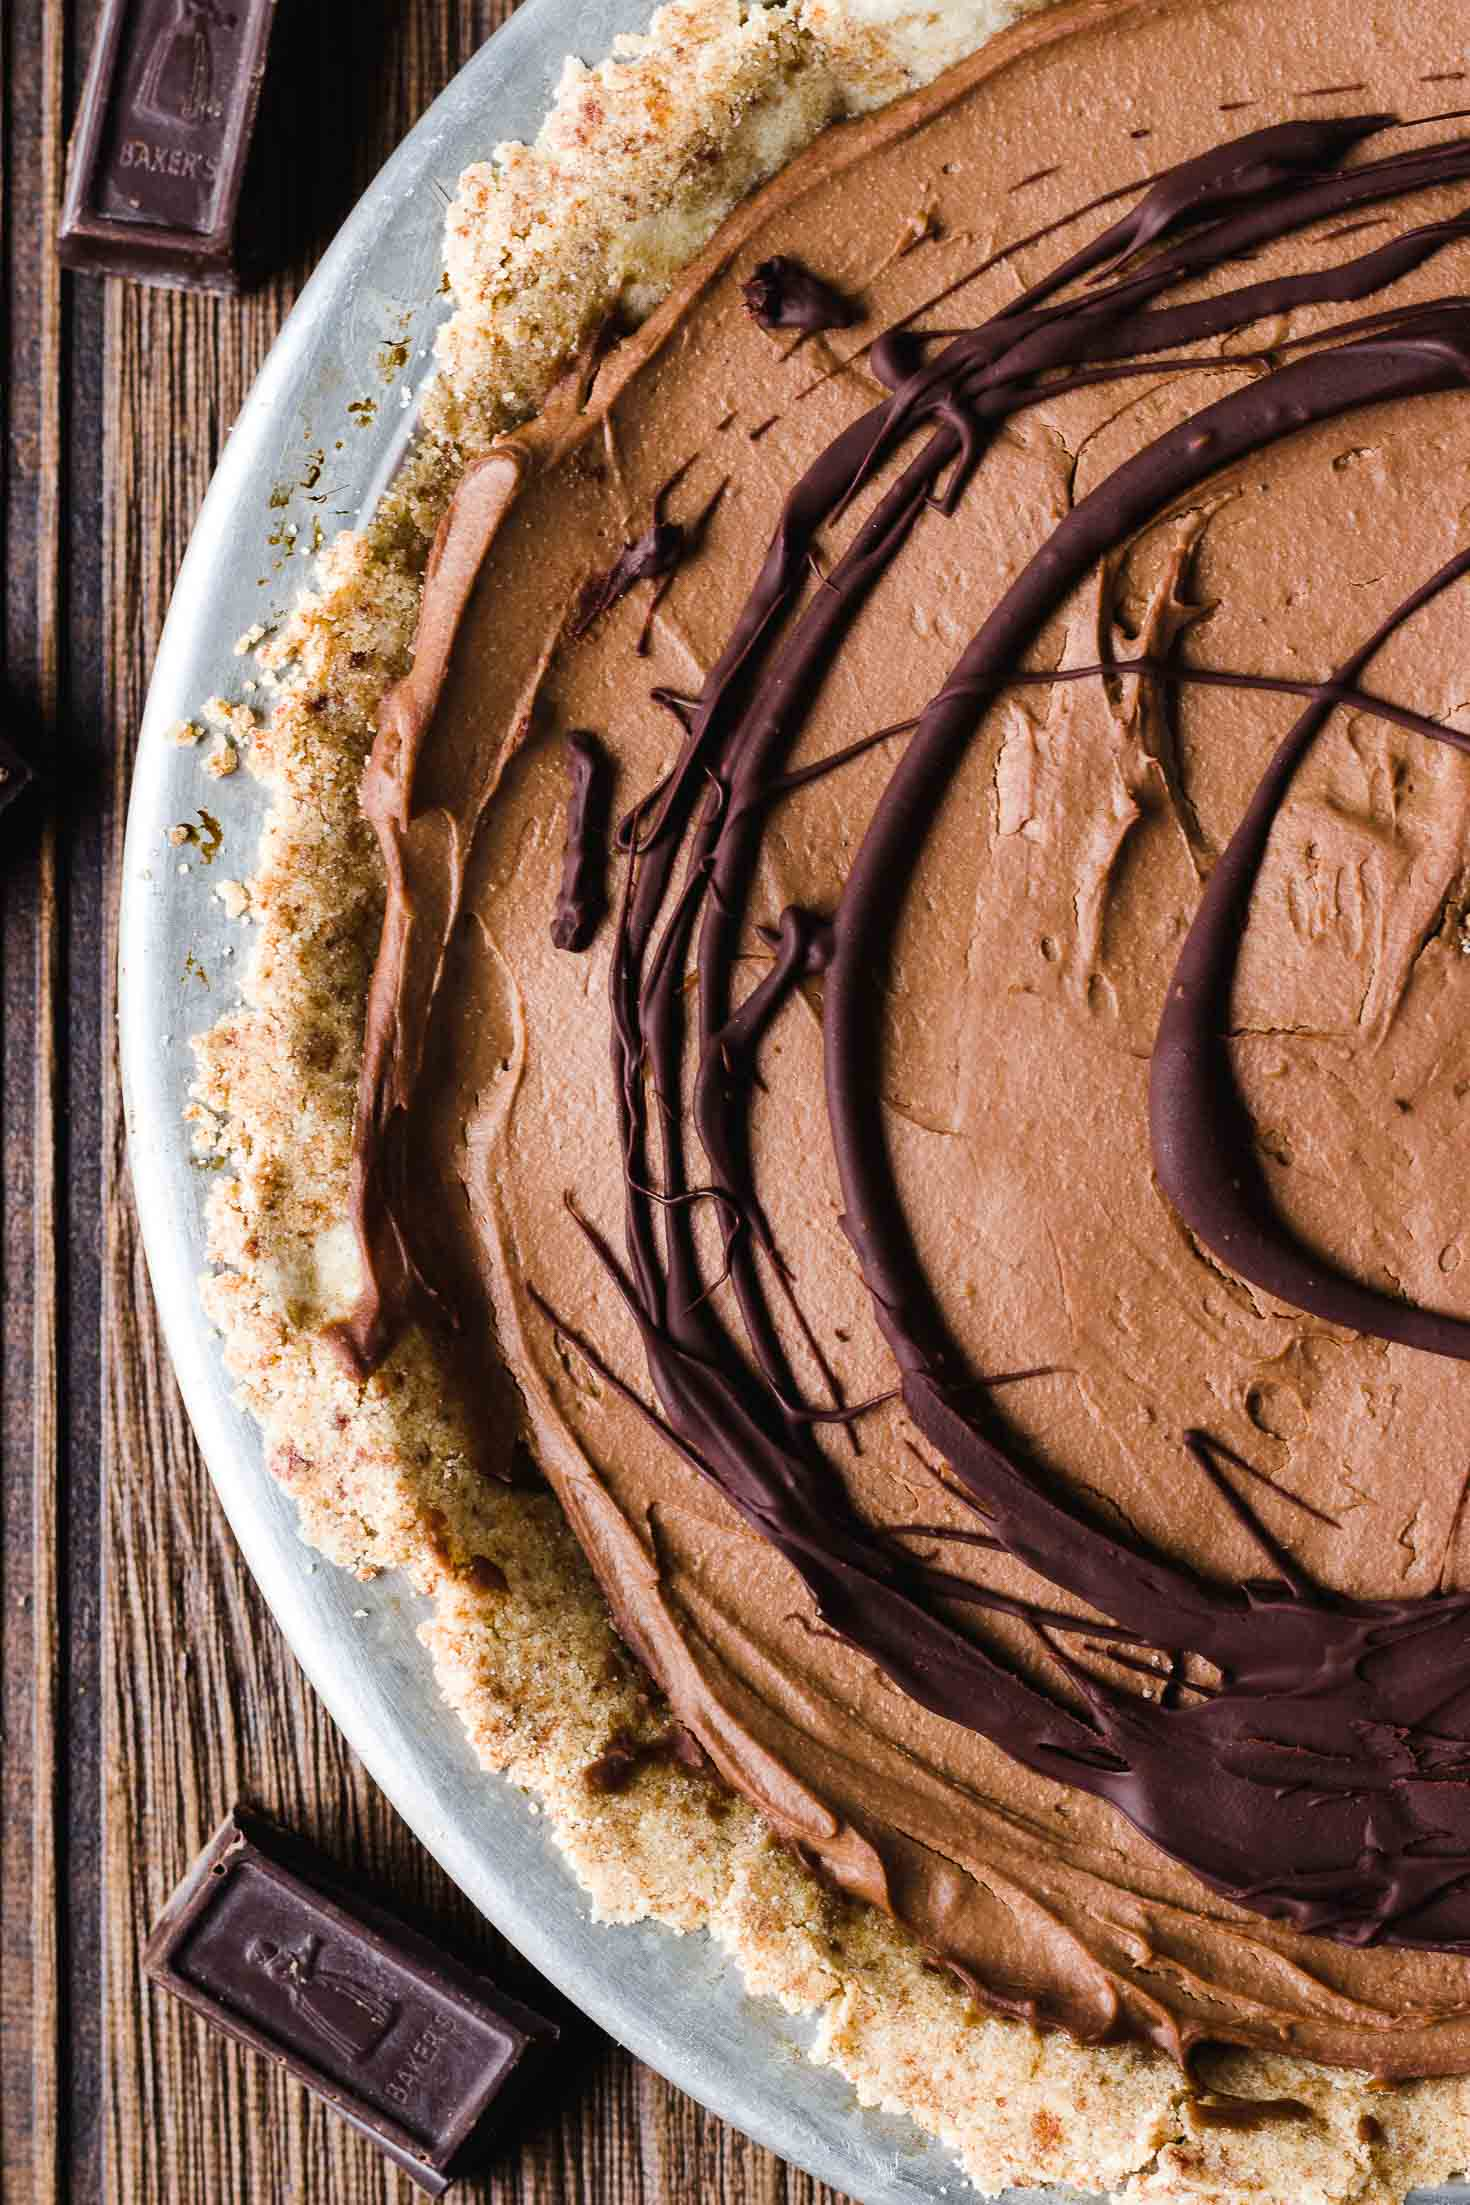 Vegan Cashew Butter Silky Chocolate Pie-top view-pie in a pie pan with melted chocolate garnishing